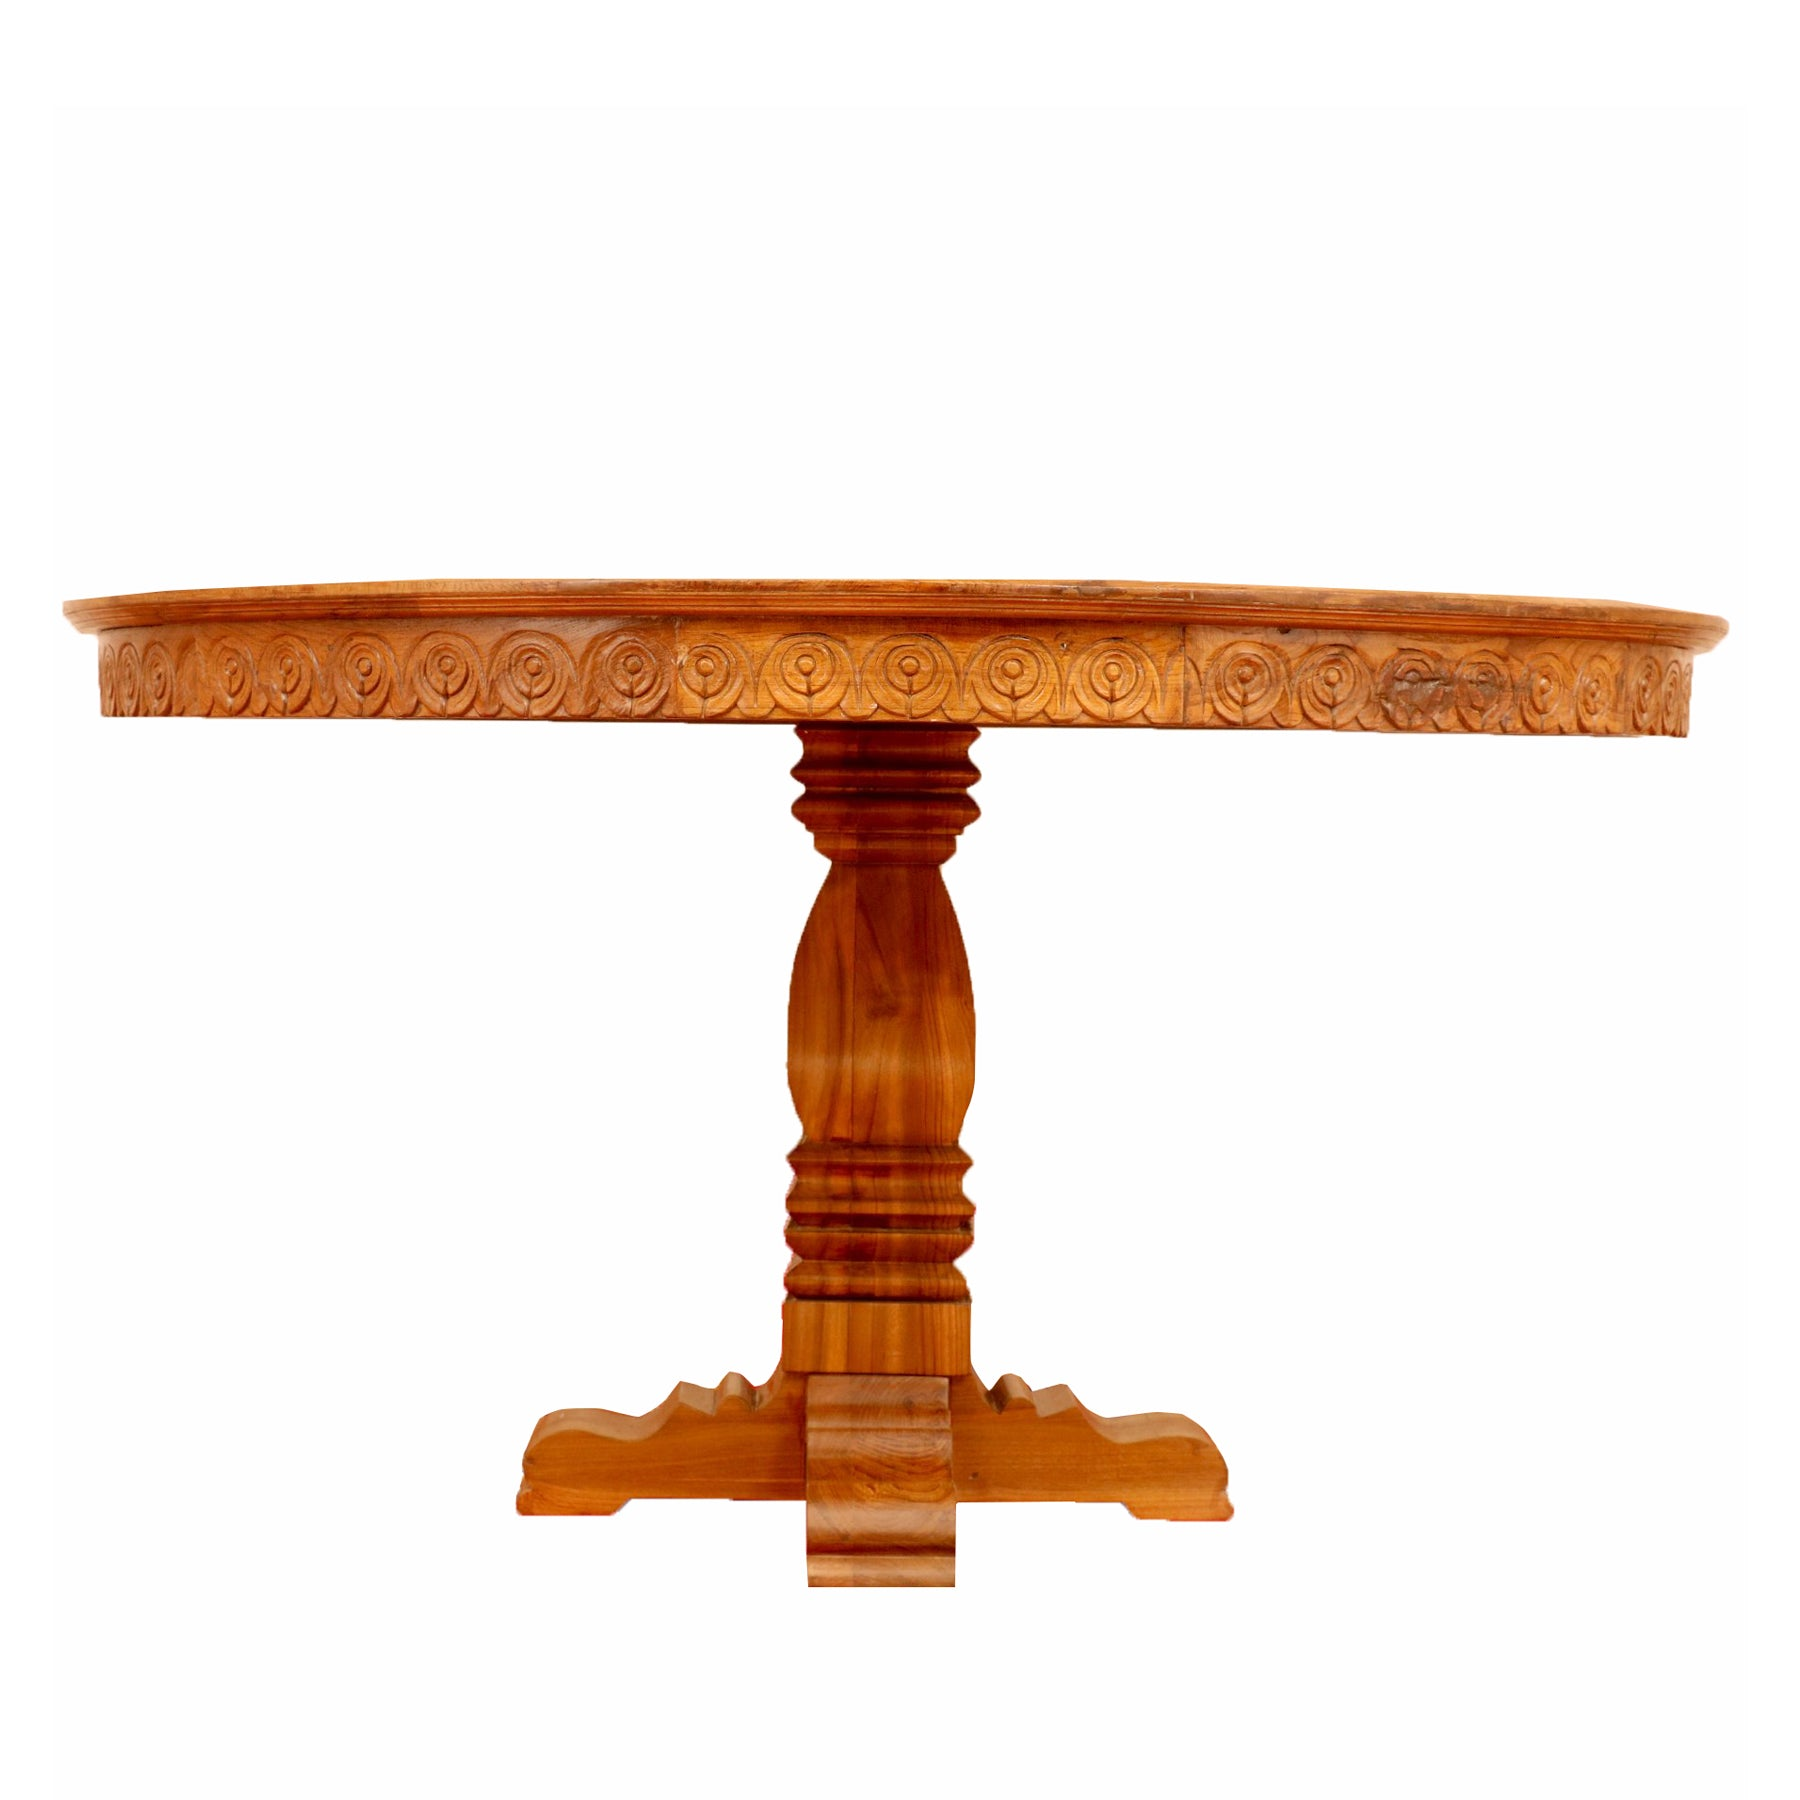 Teak wood Rounded carving Table